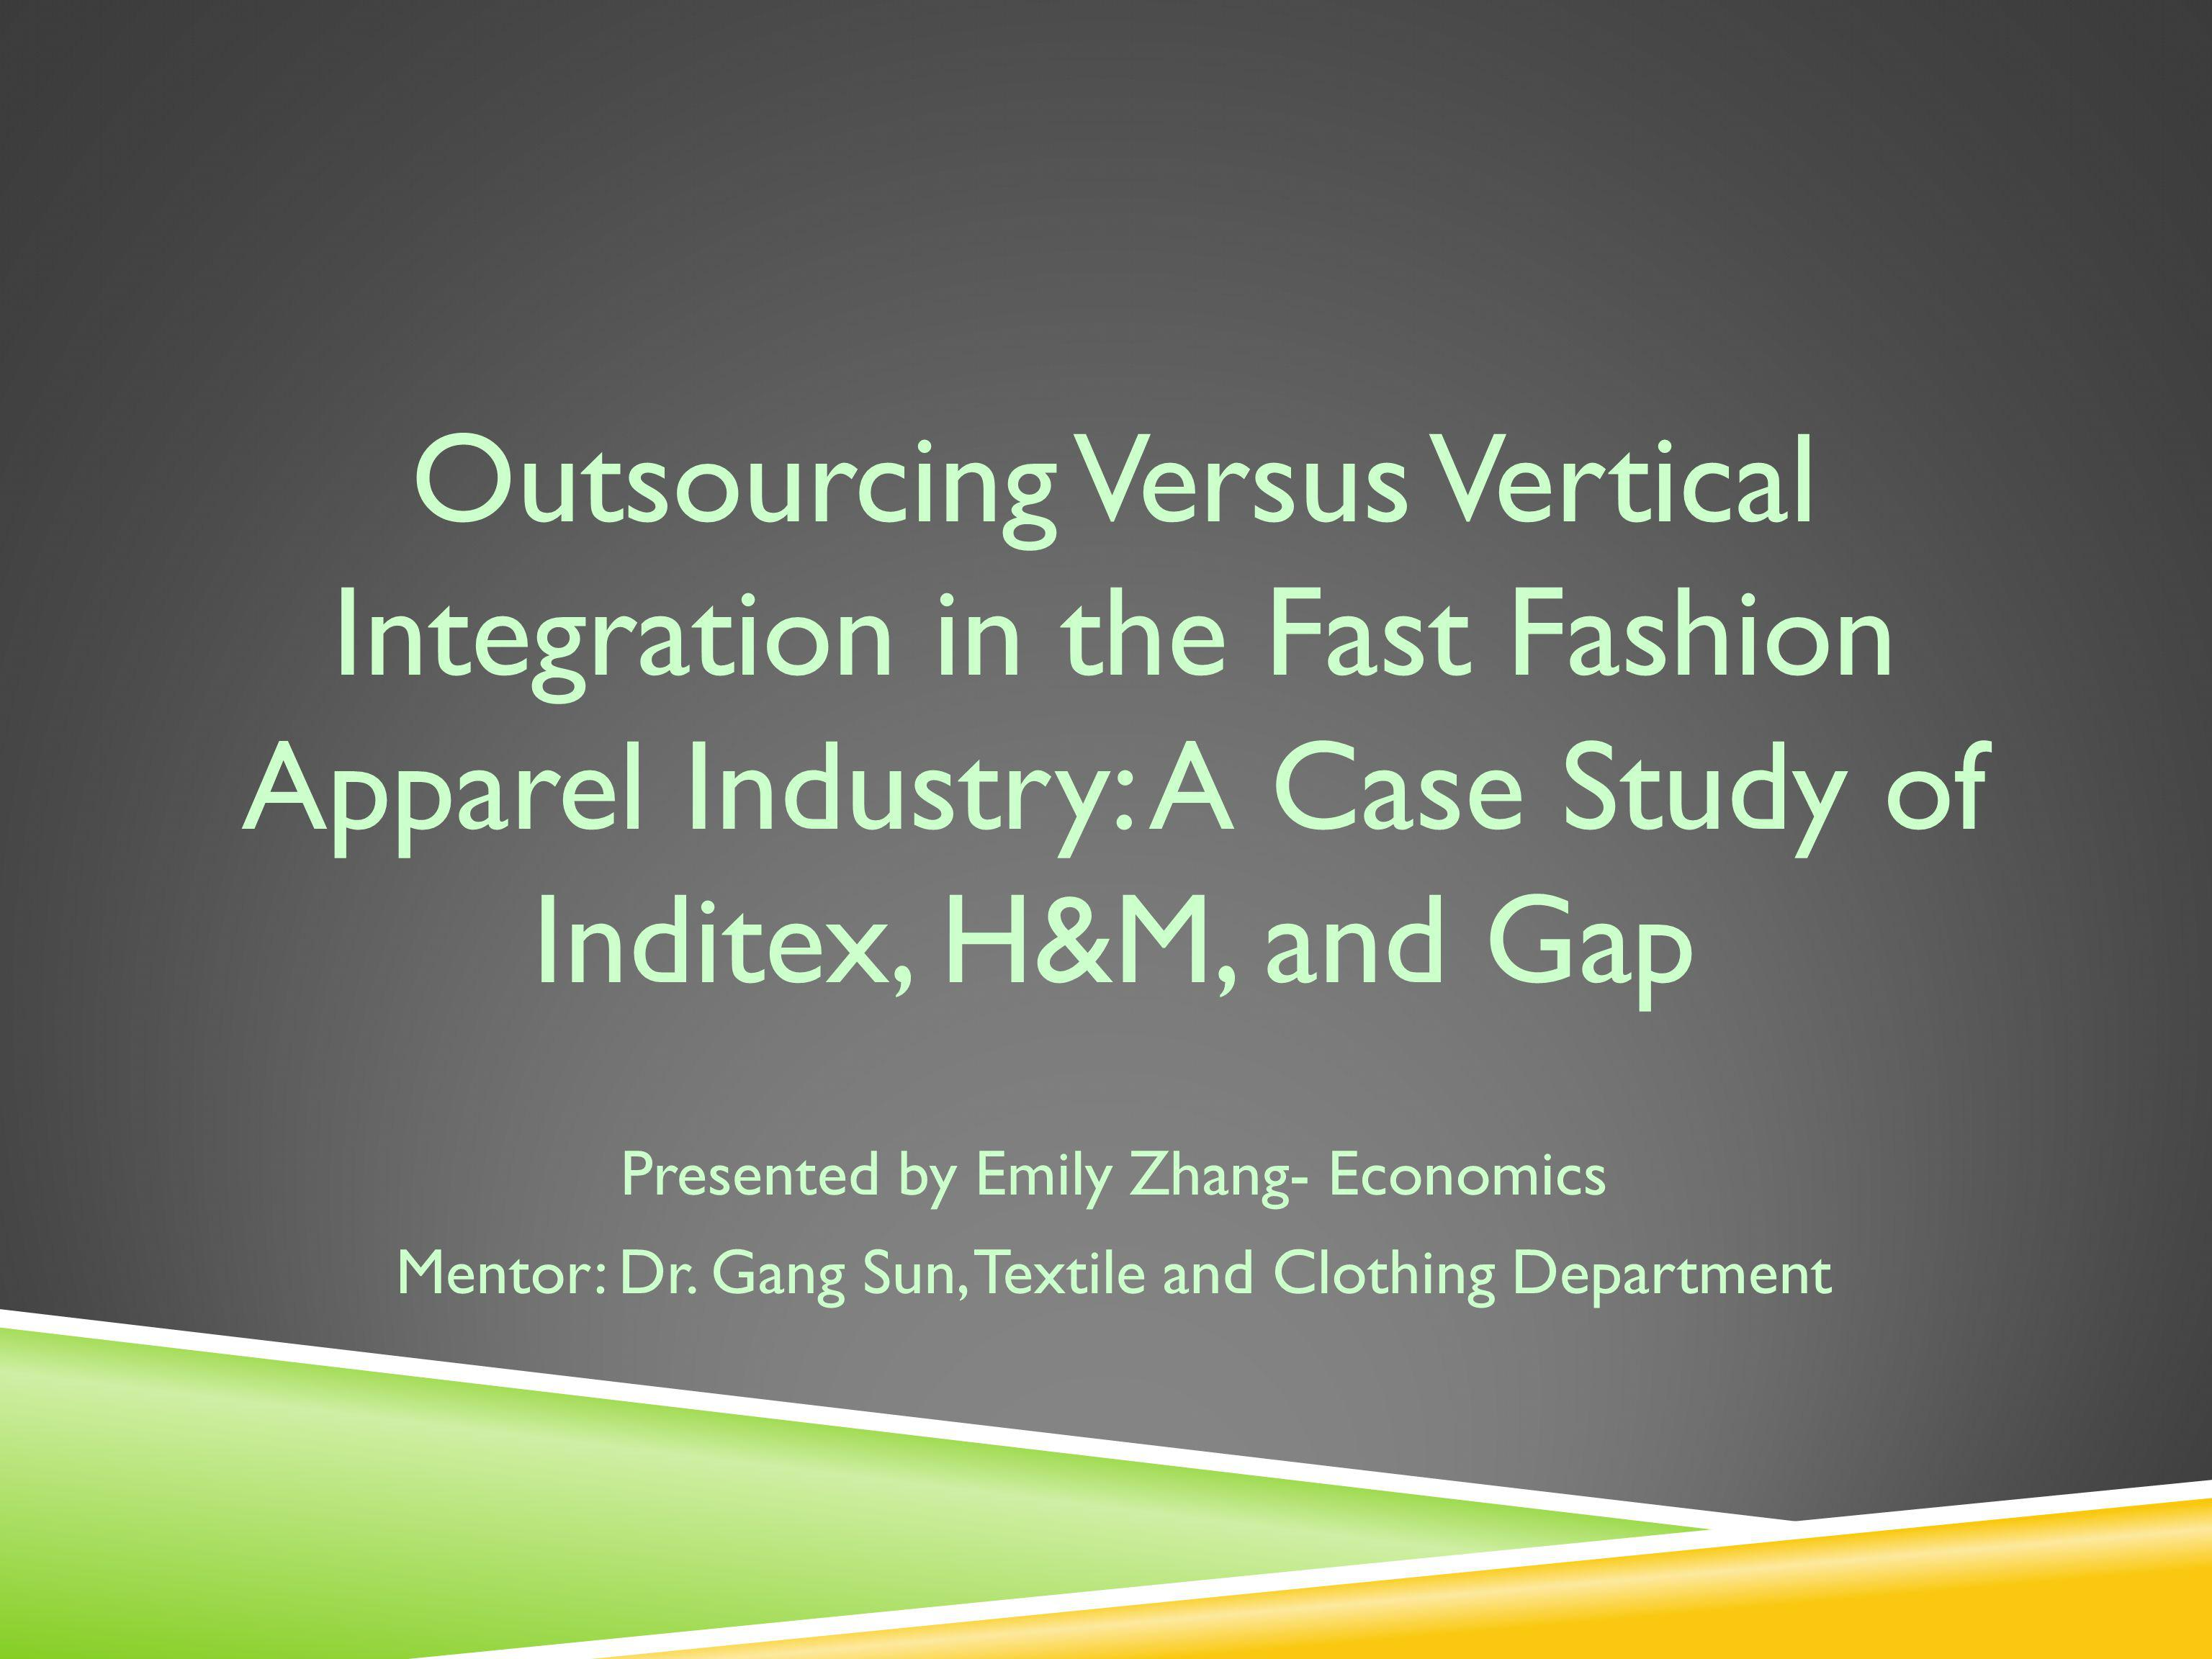 Outsourcing Versus Vertical Integration in the Fast Fashion Apparel Industry: A Case Study of Inditex, H&M, and Gap